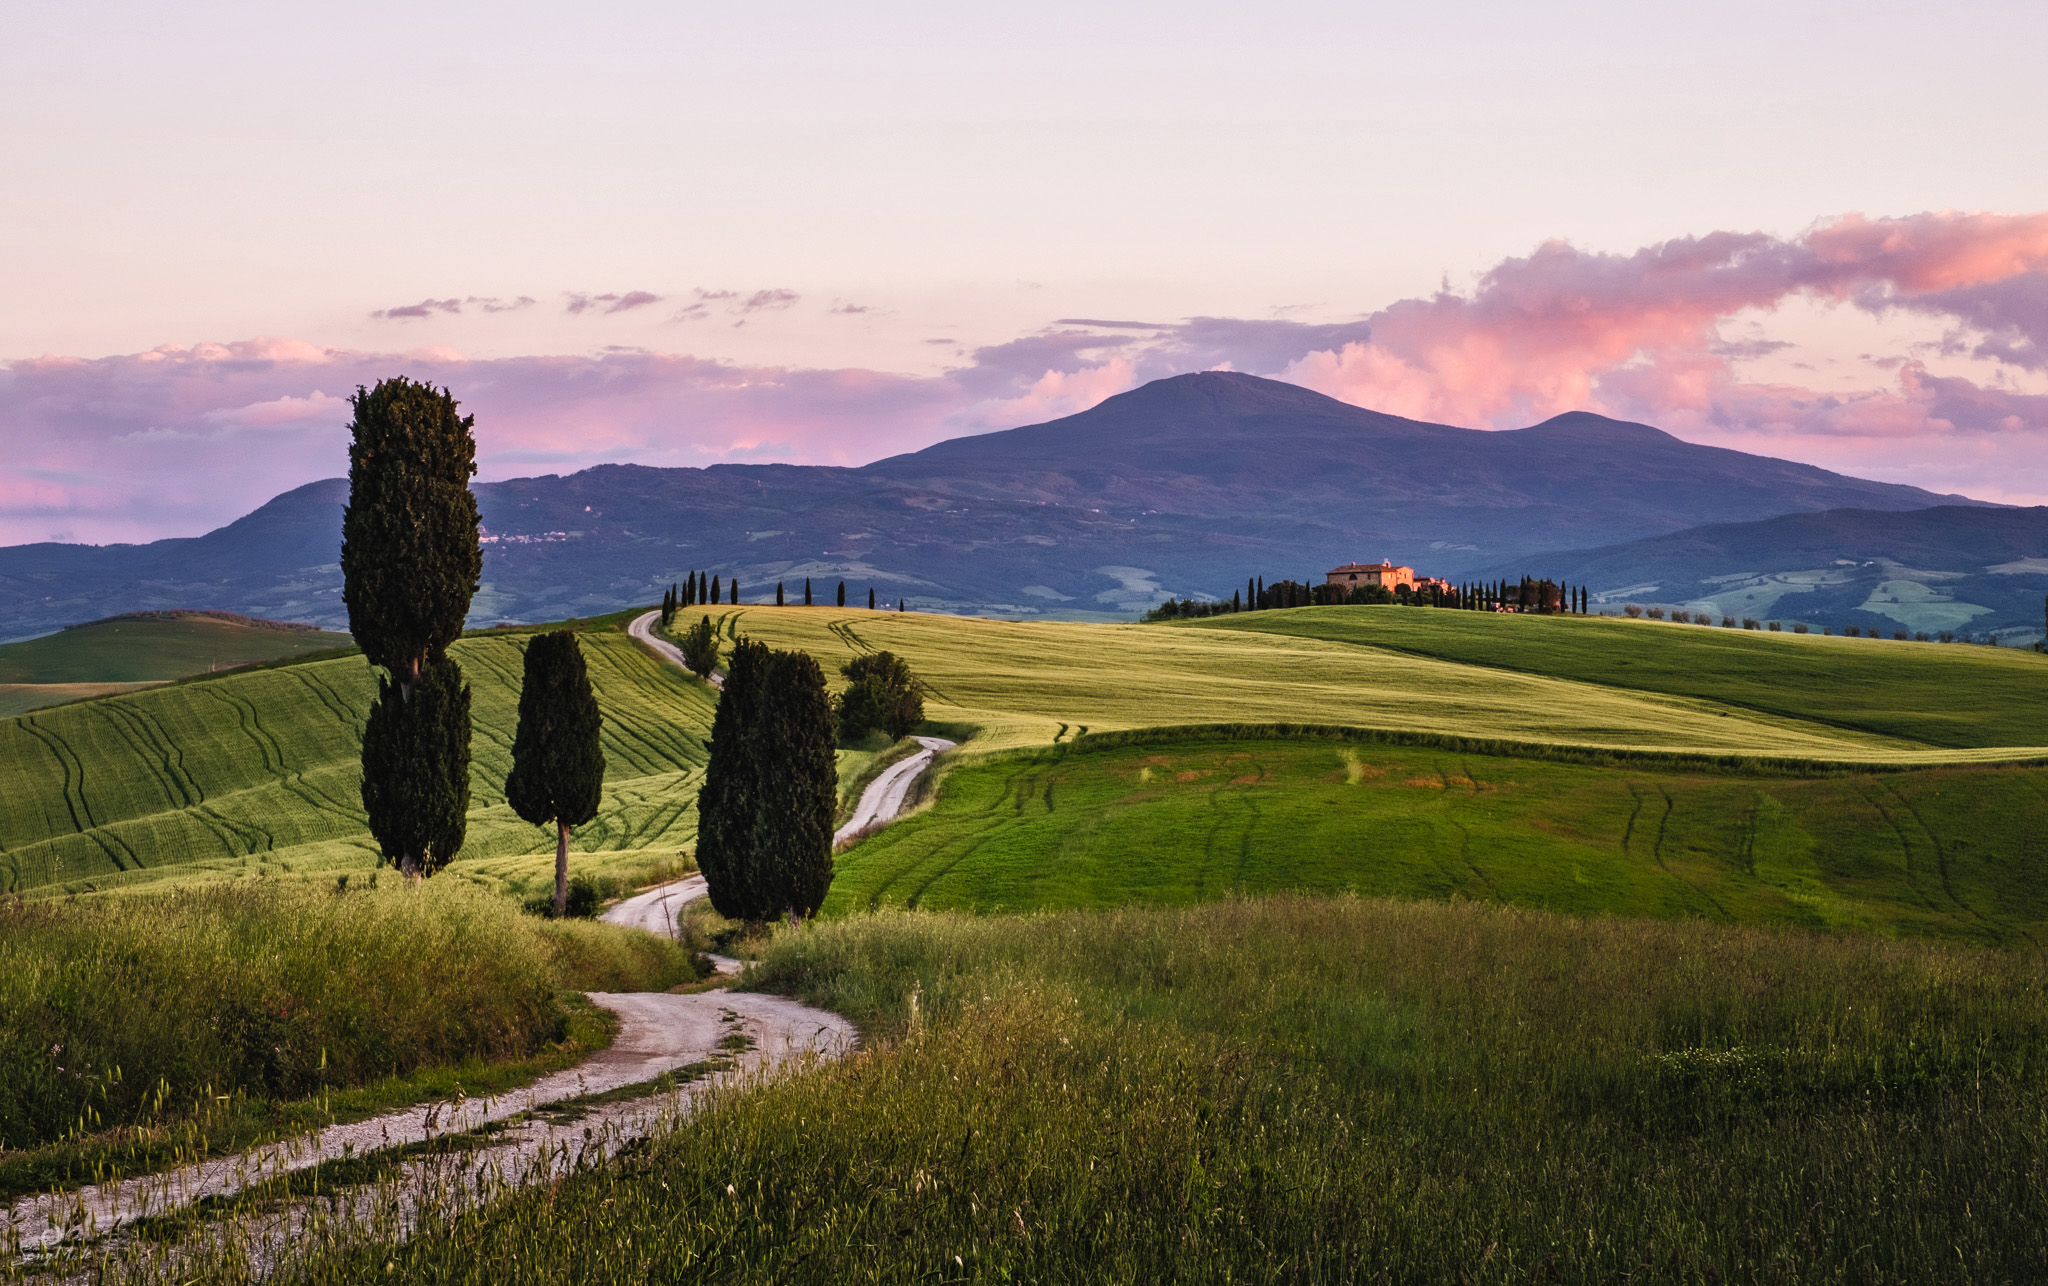 The road from Pienza